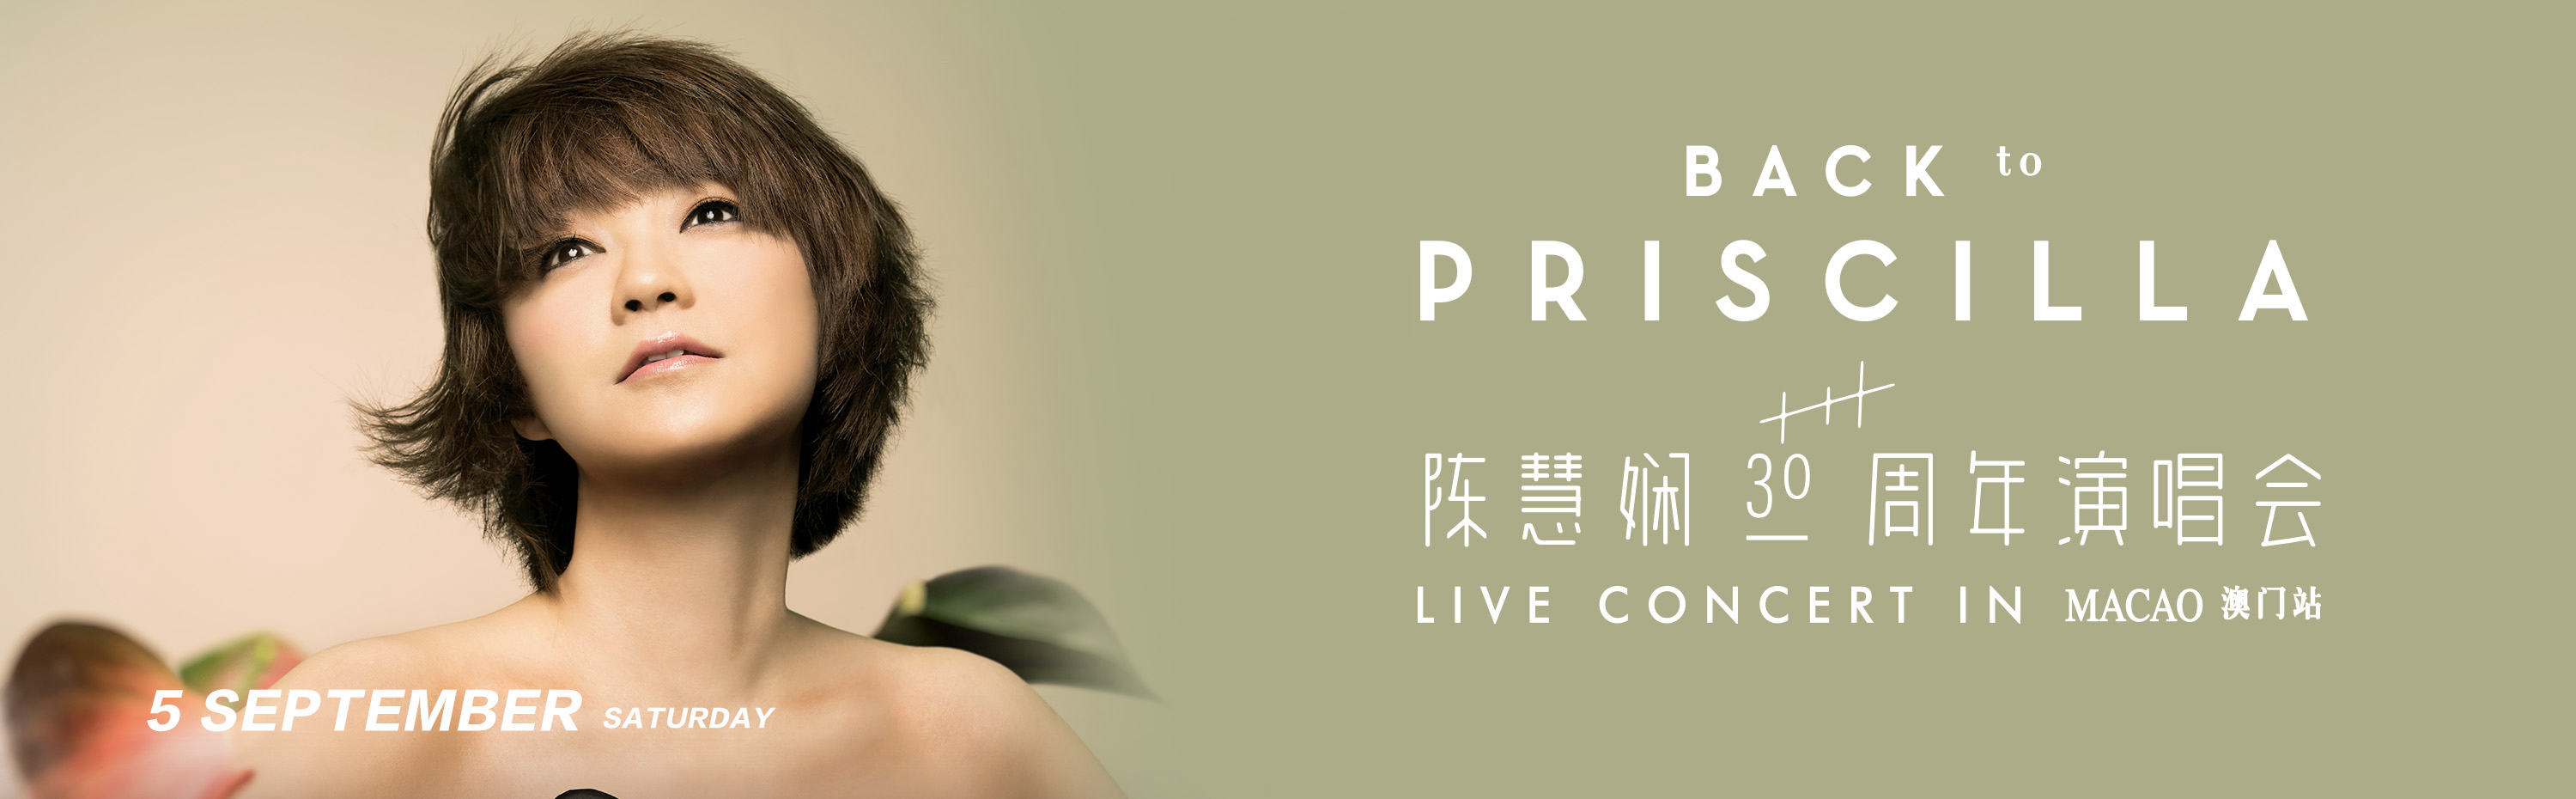 Back to Priscilla Live Concert in Macao